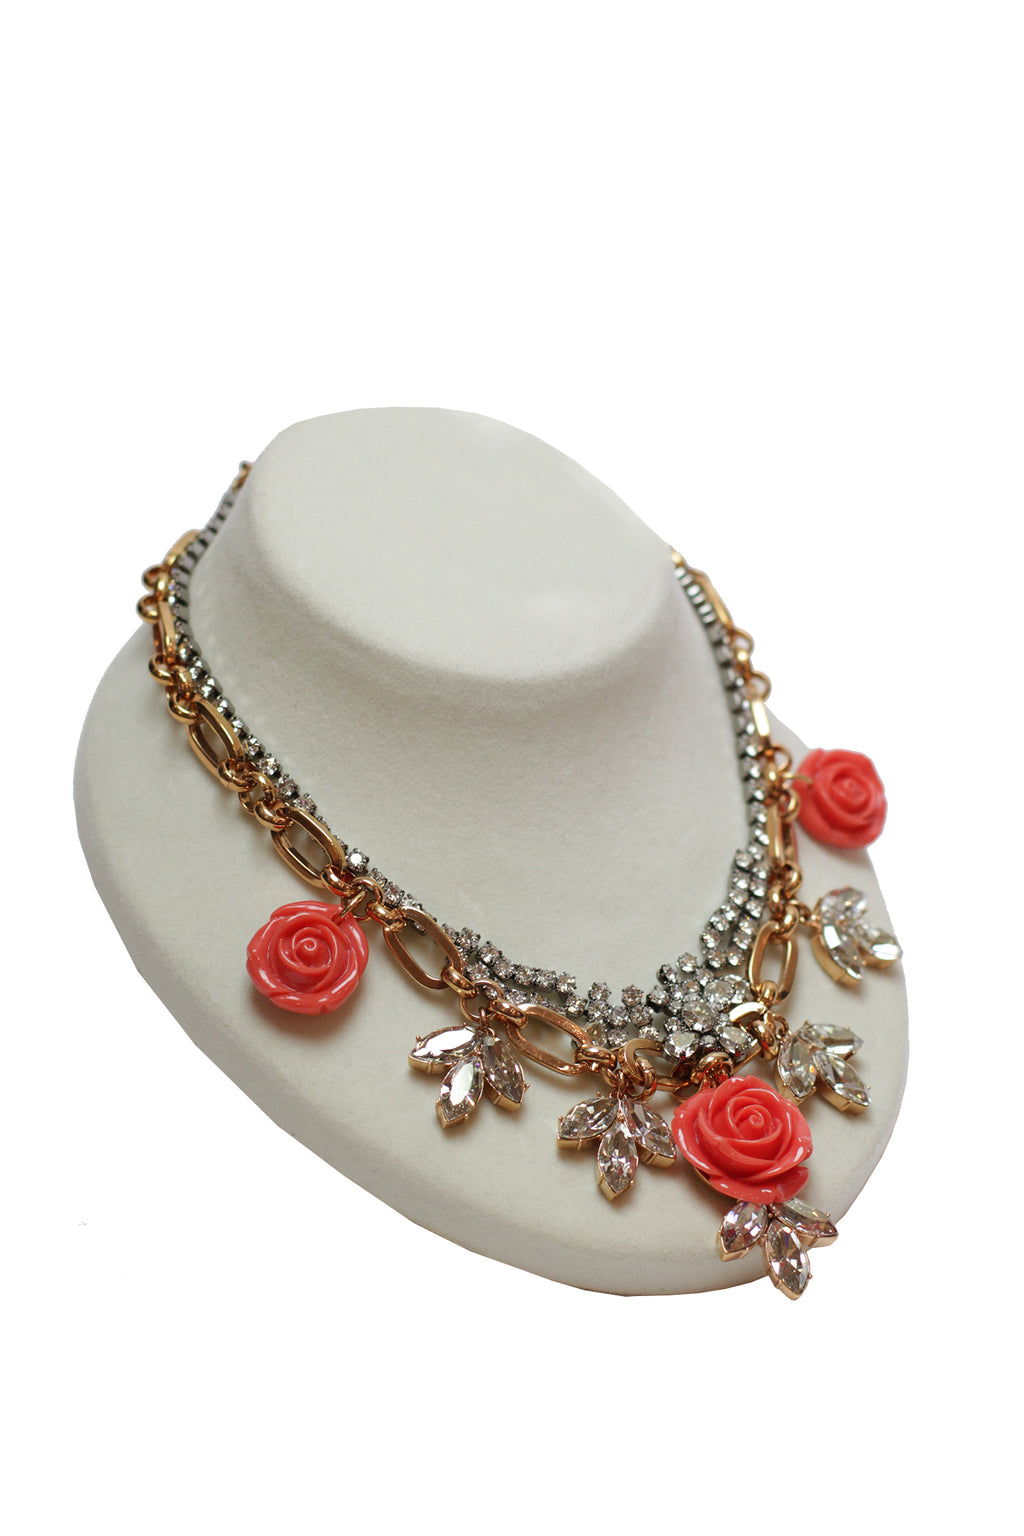 Mawi - Layered Rose Necklace with Crystals